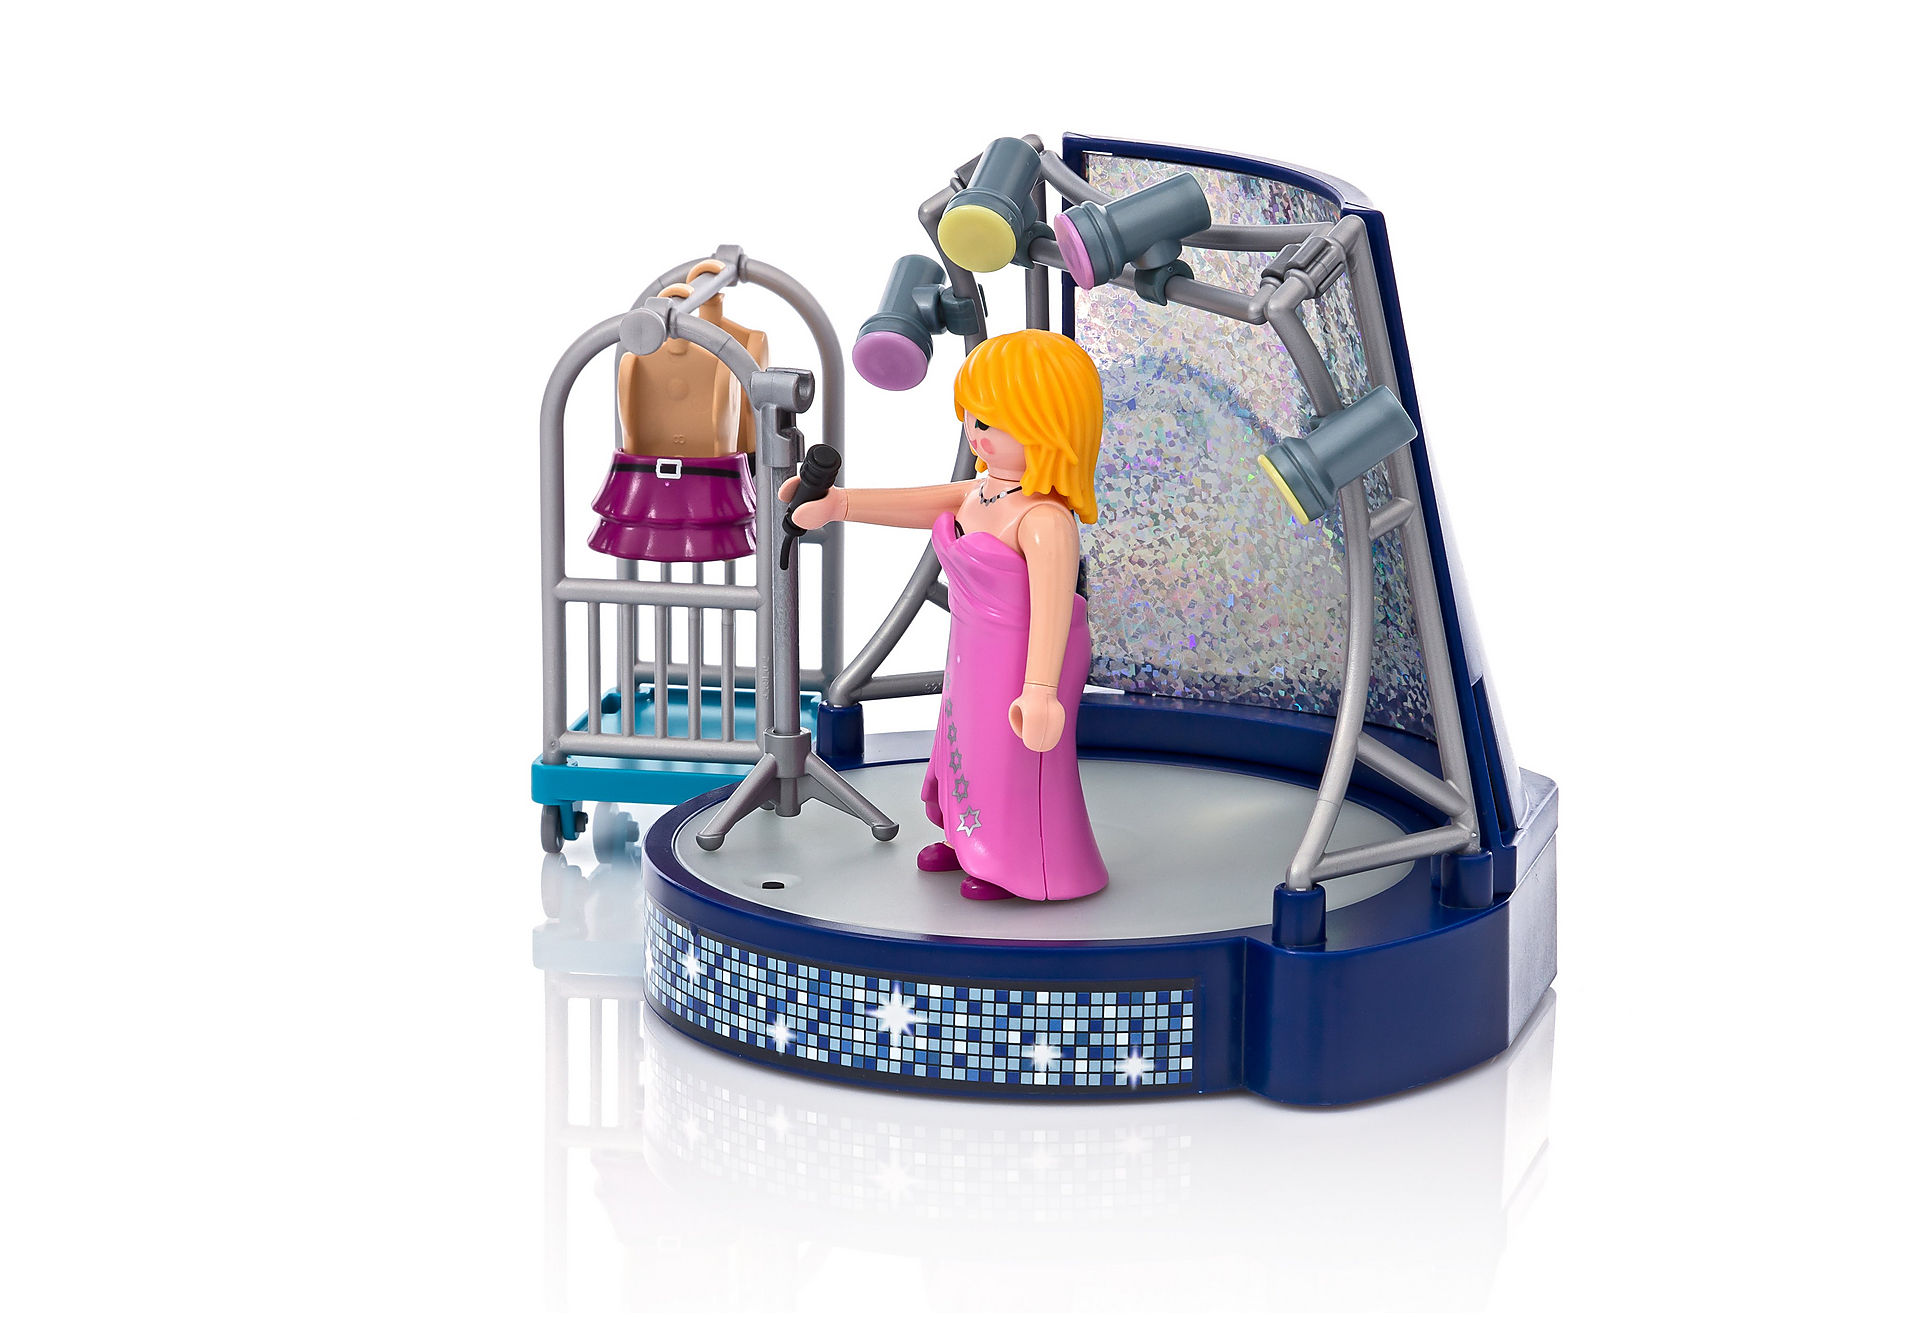 360degree image 8